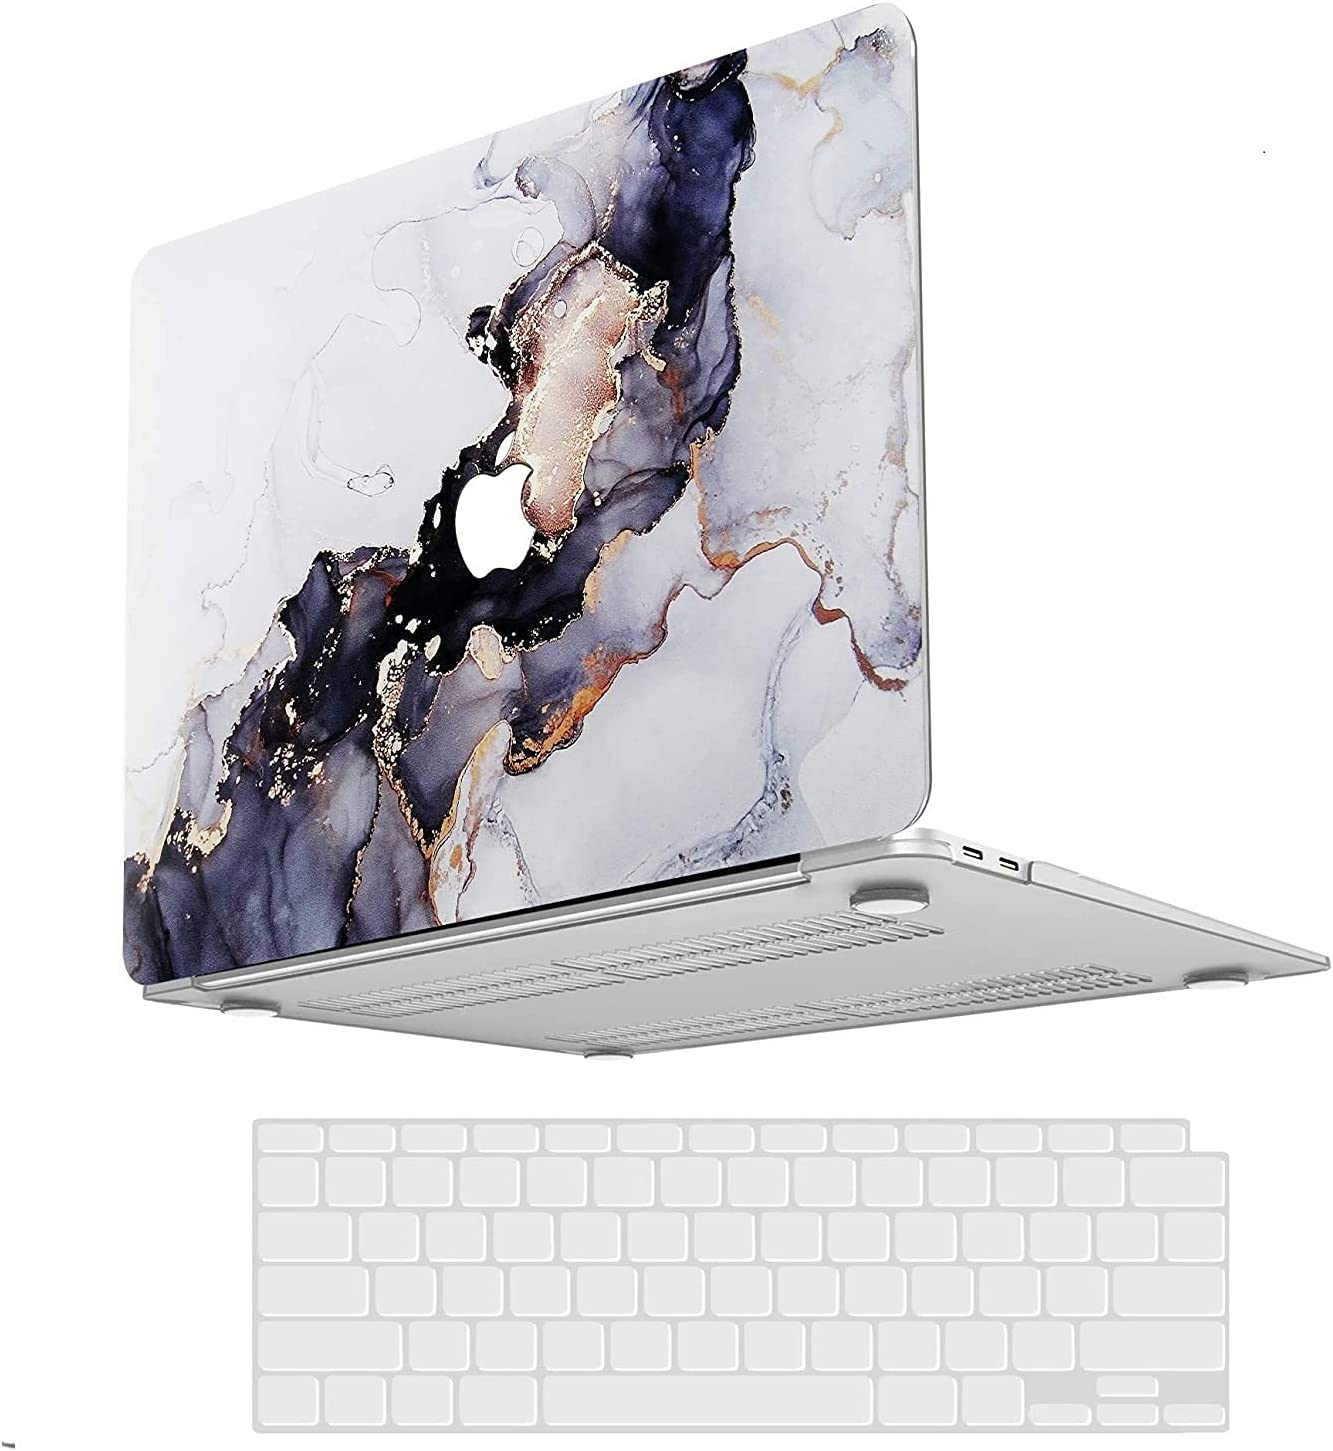 MacBook Pro 13 Inch Case 2020 2021 2019 2018 2017 2016 Release M1 A2338 A2251 A2289 A2159 A1989 A1706 A1708, Laptop Case Hard Shell + 3 Keyboard Cover Compatible for Apple MacBook Pro Touch Bar Marble